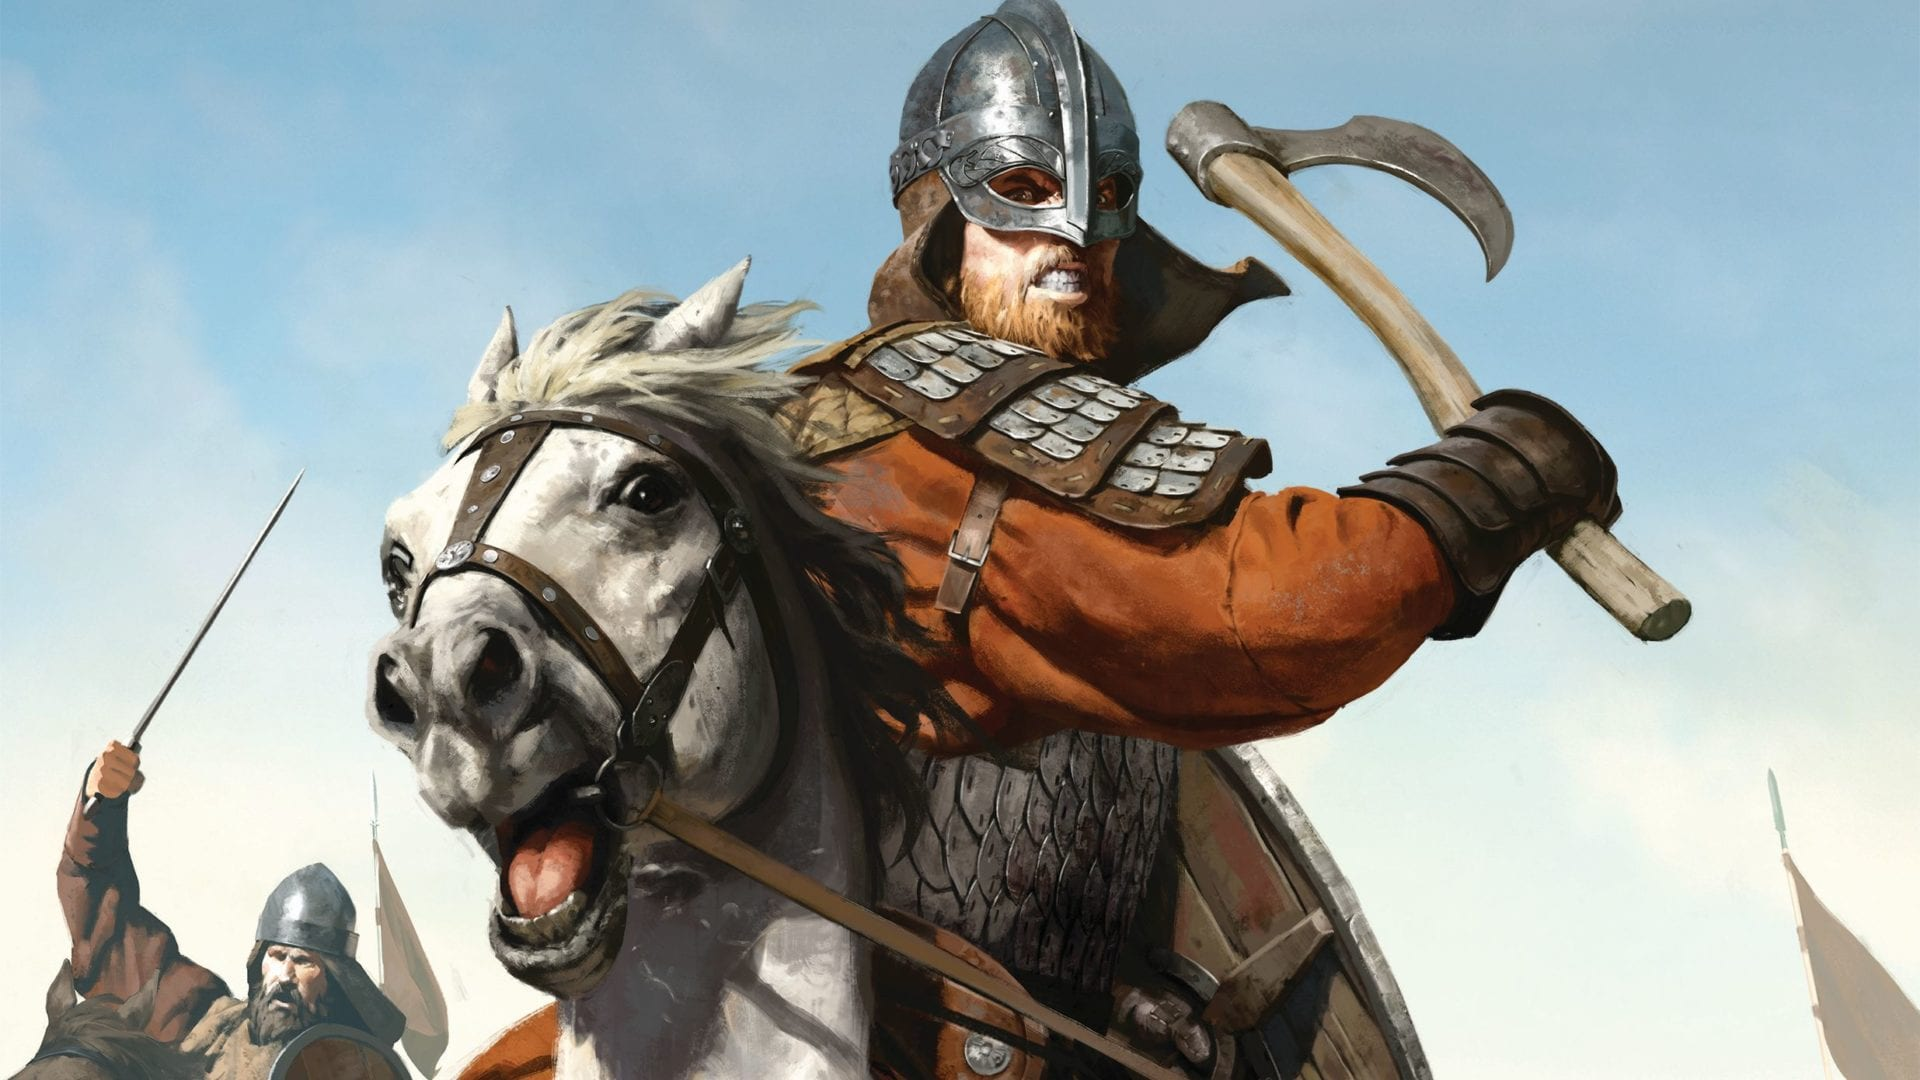 mount & Blade 2, bannerlord, multiplayer